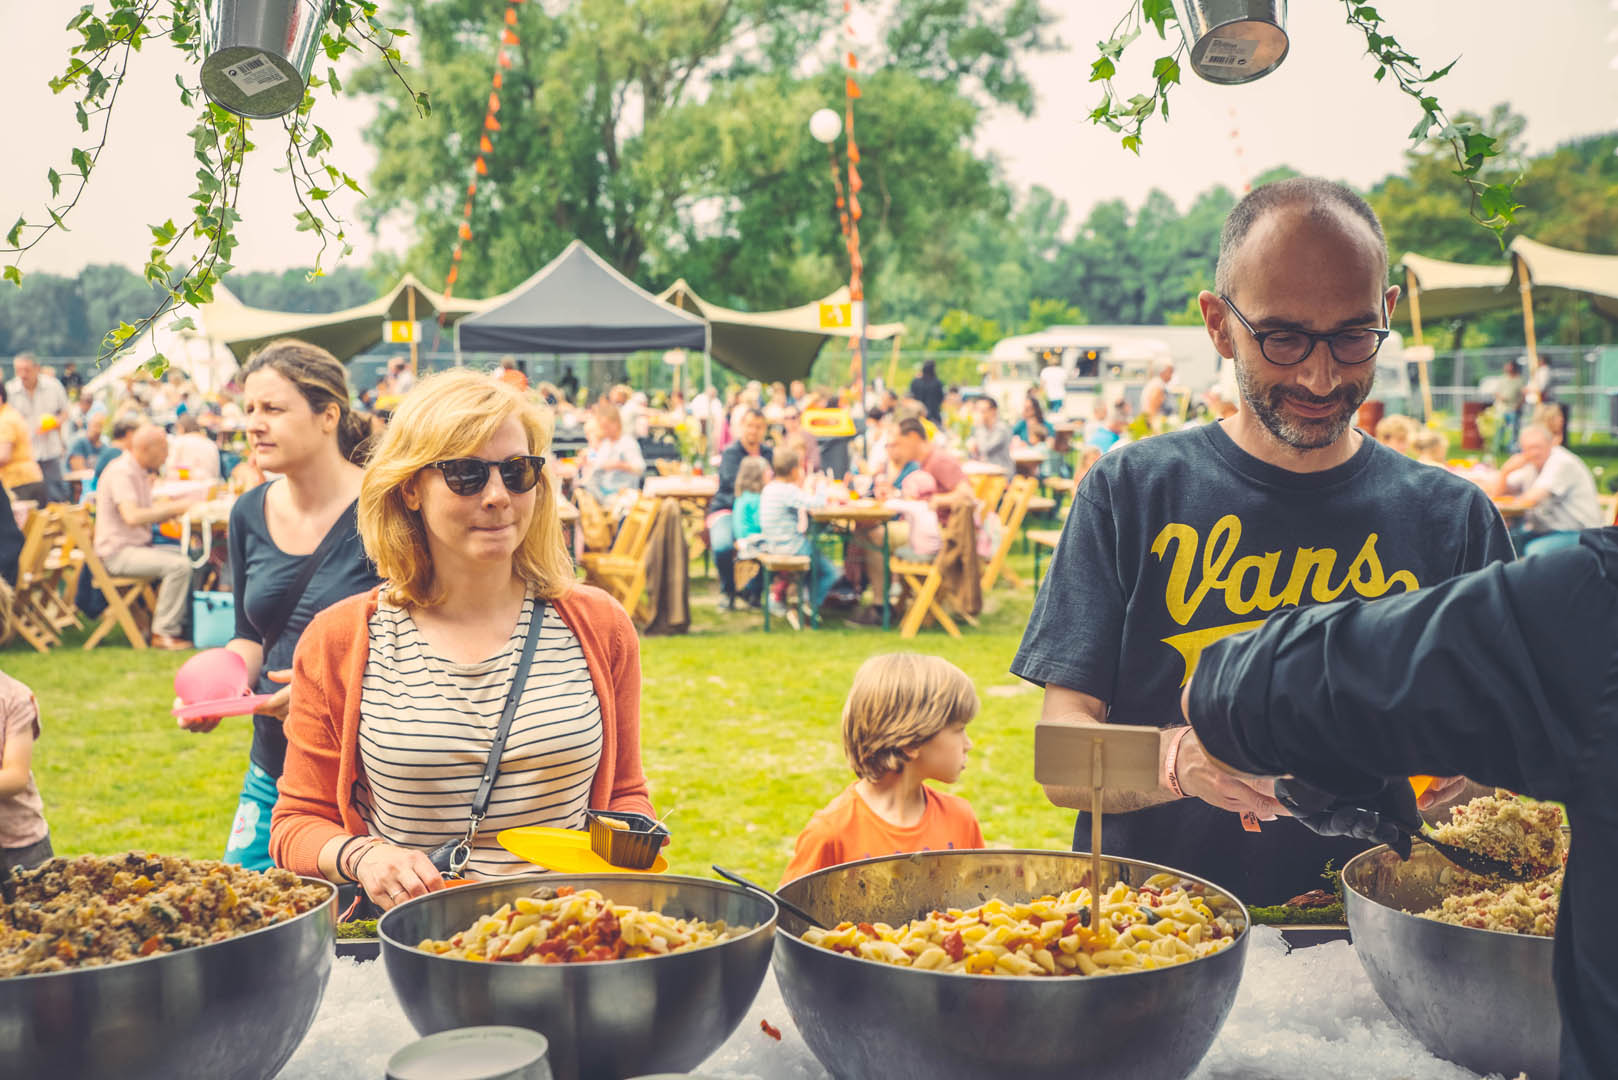 Stad Gent Picknick Event Bediening